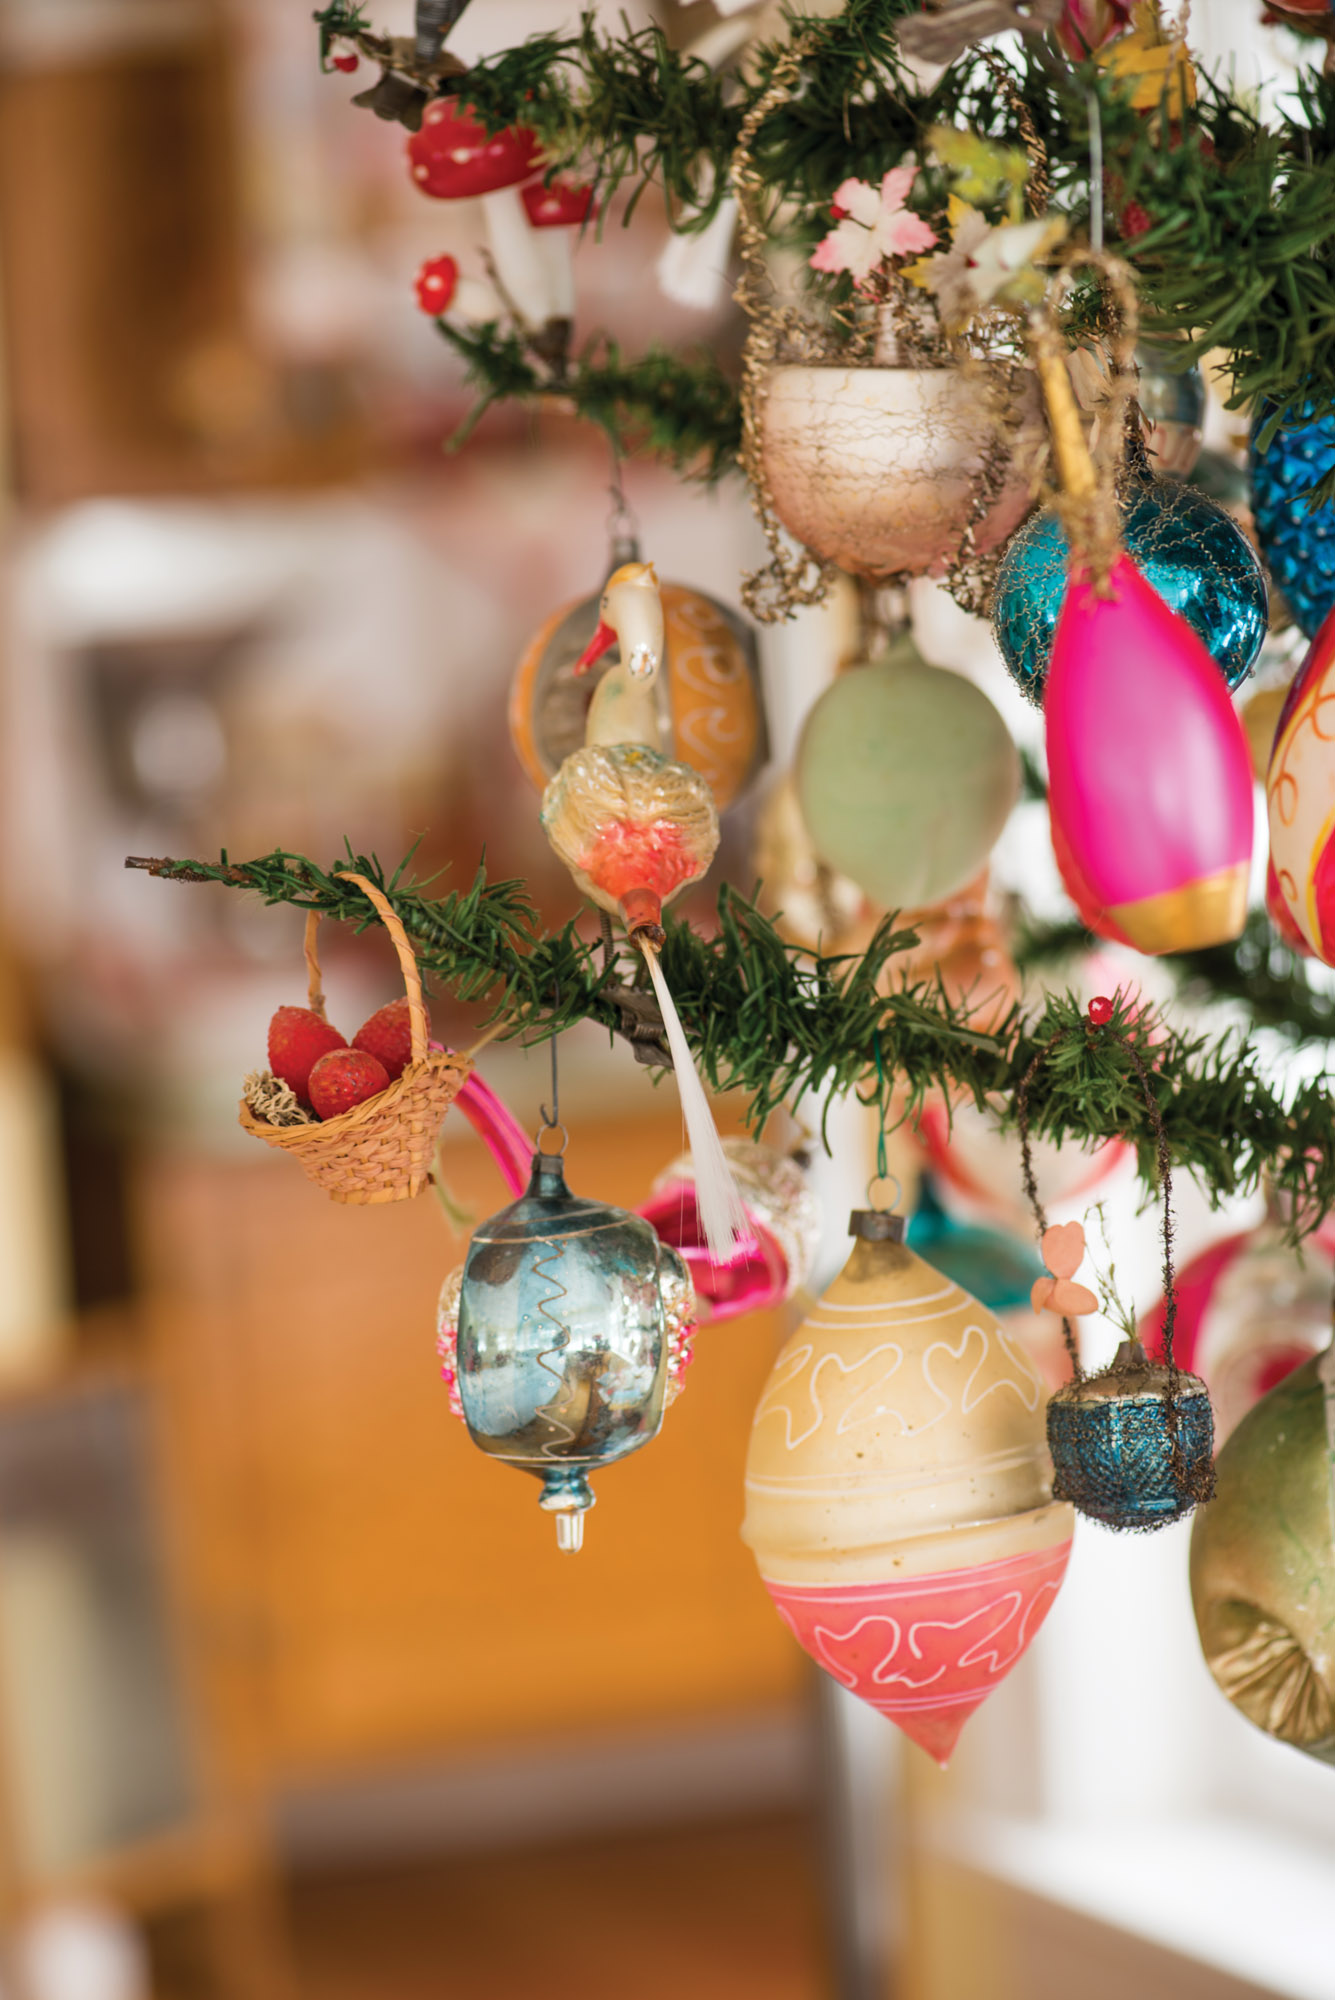 Celebrating the Holidays with Antique Ornaments